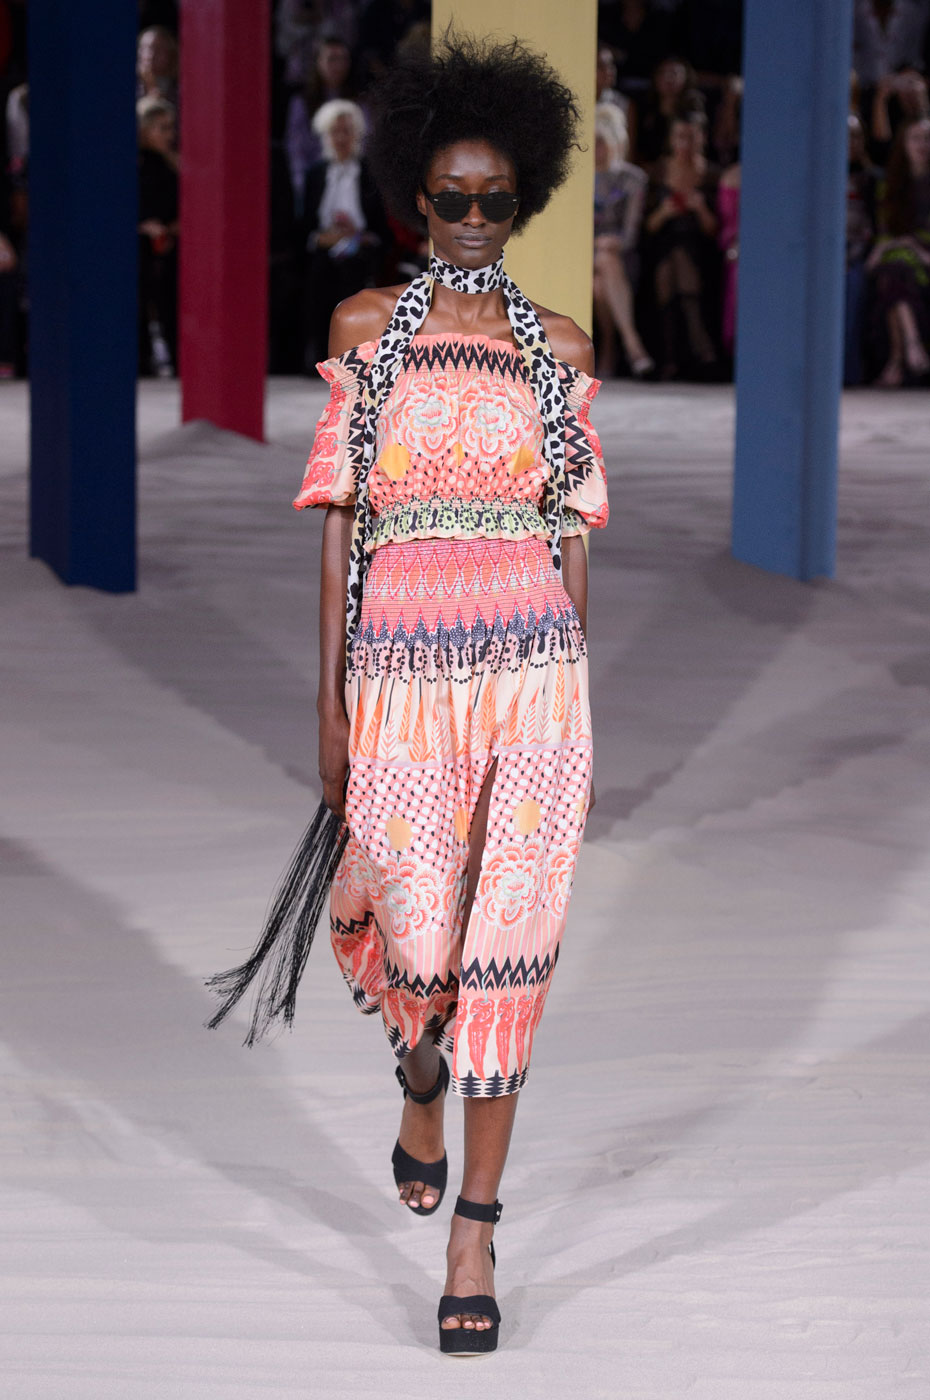 Temperley London's Spring 2017 Collection Is Irrepressibly Optimistic